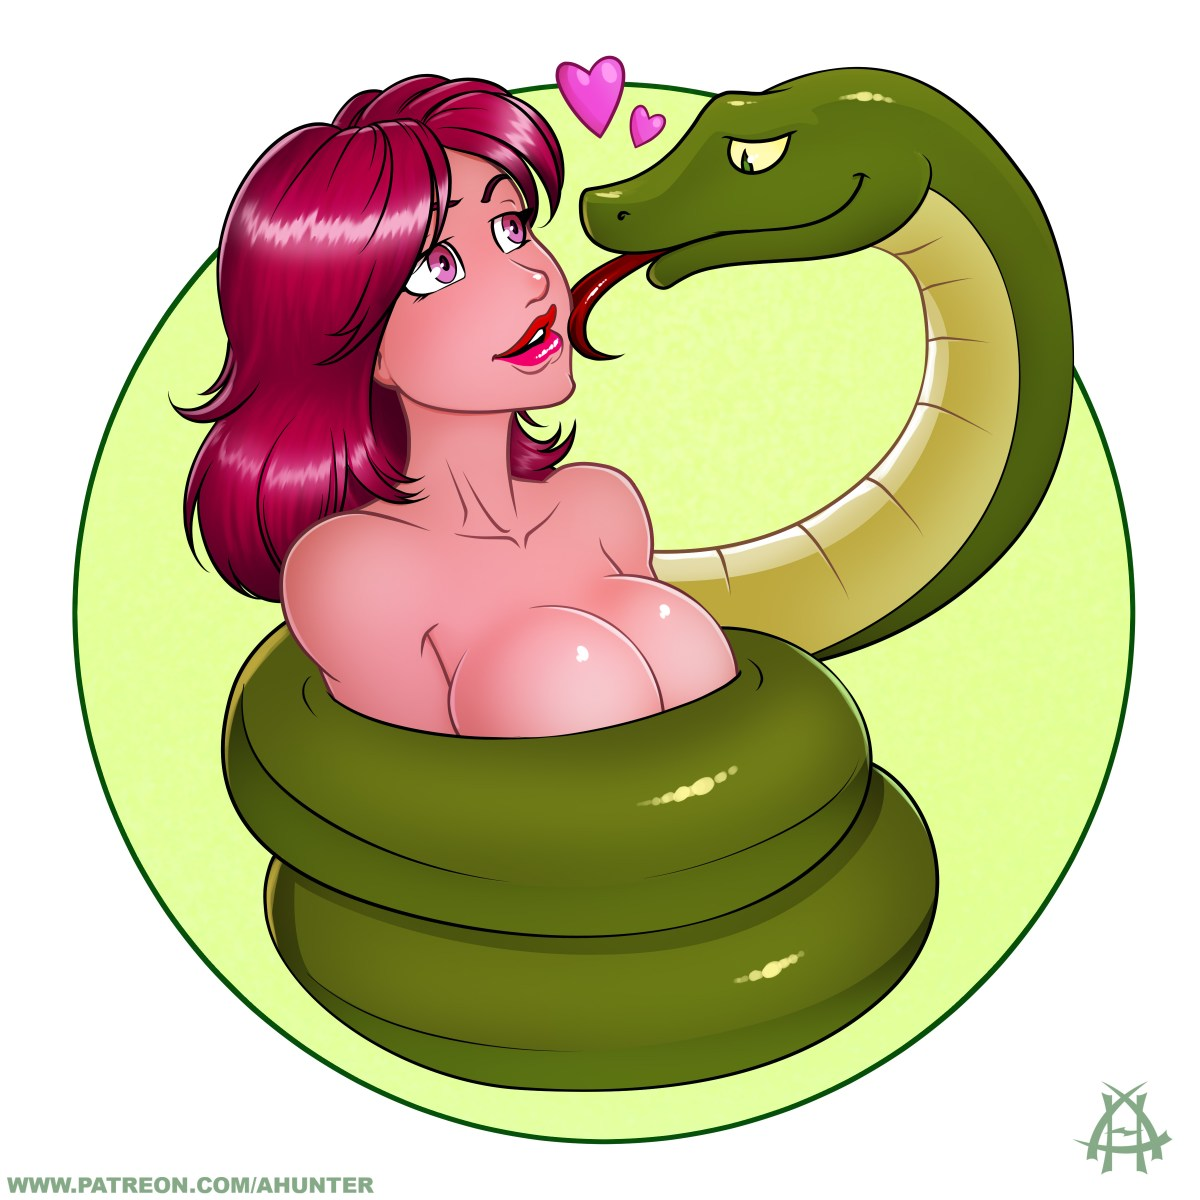 A buxom naked babe is coiled by a constrictor snake which looks likely to eat her -- much to her delight.  Illustration by Andrew Hunter.